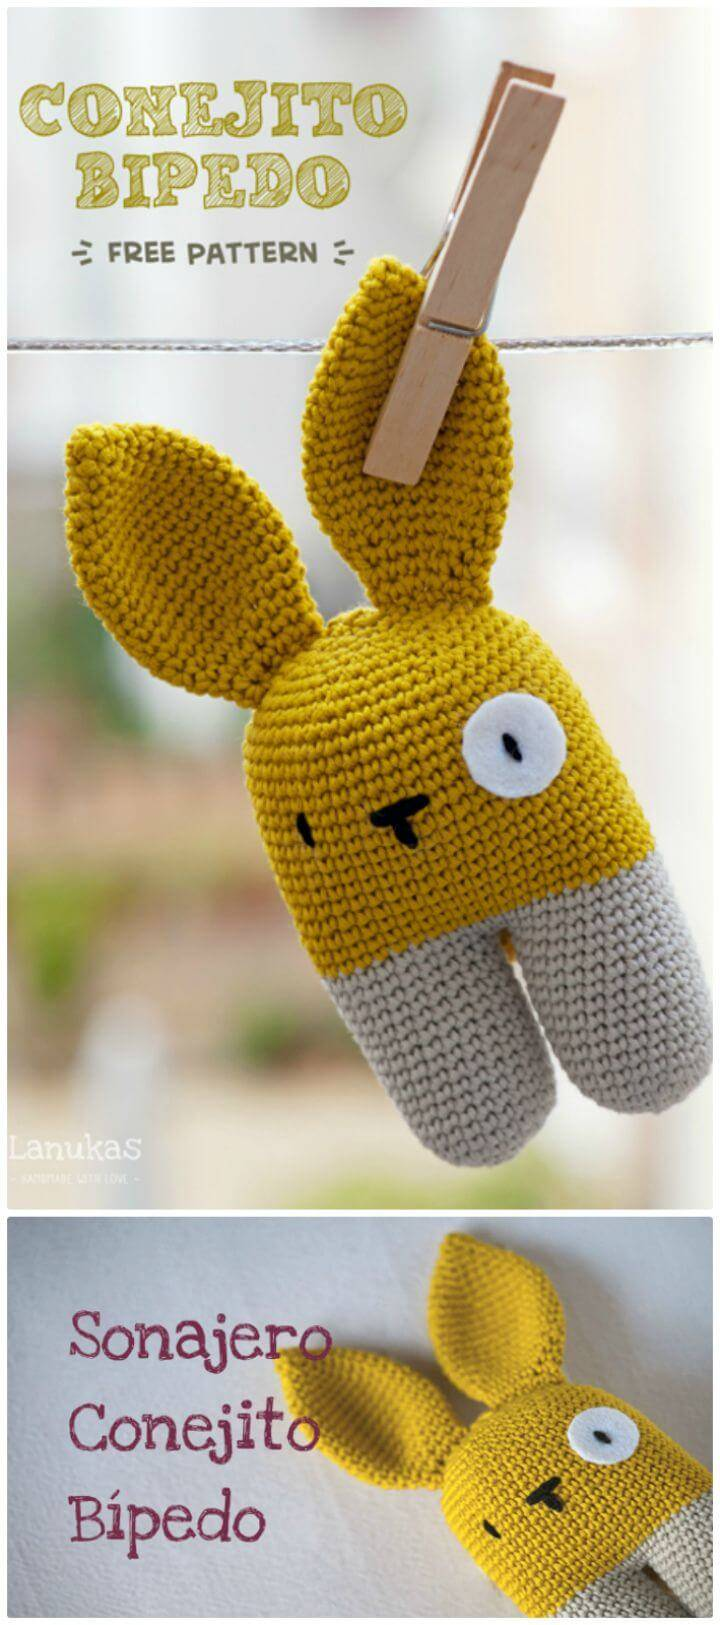 How To Crochet A Bípedo Bunny - Free Pattern